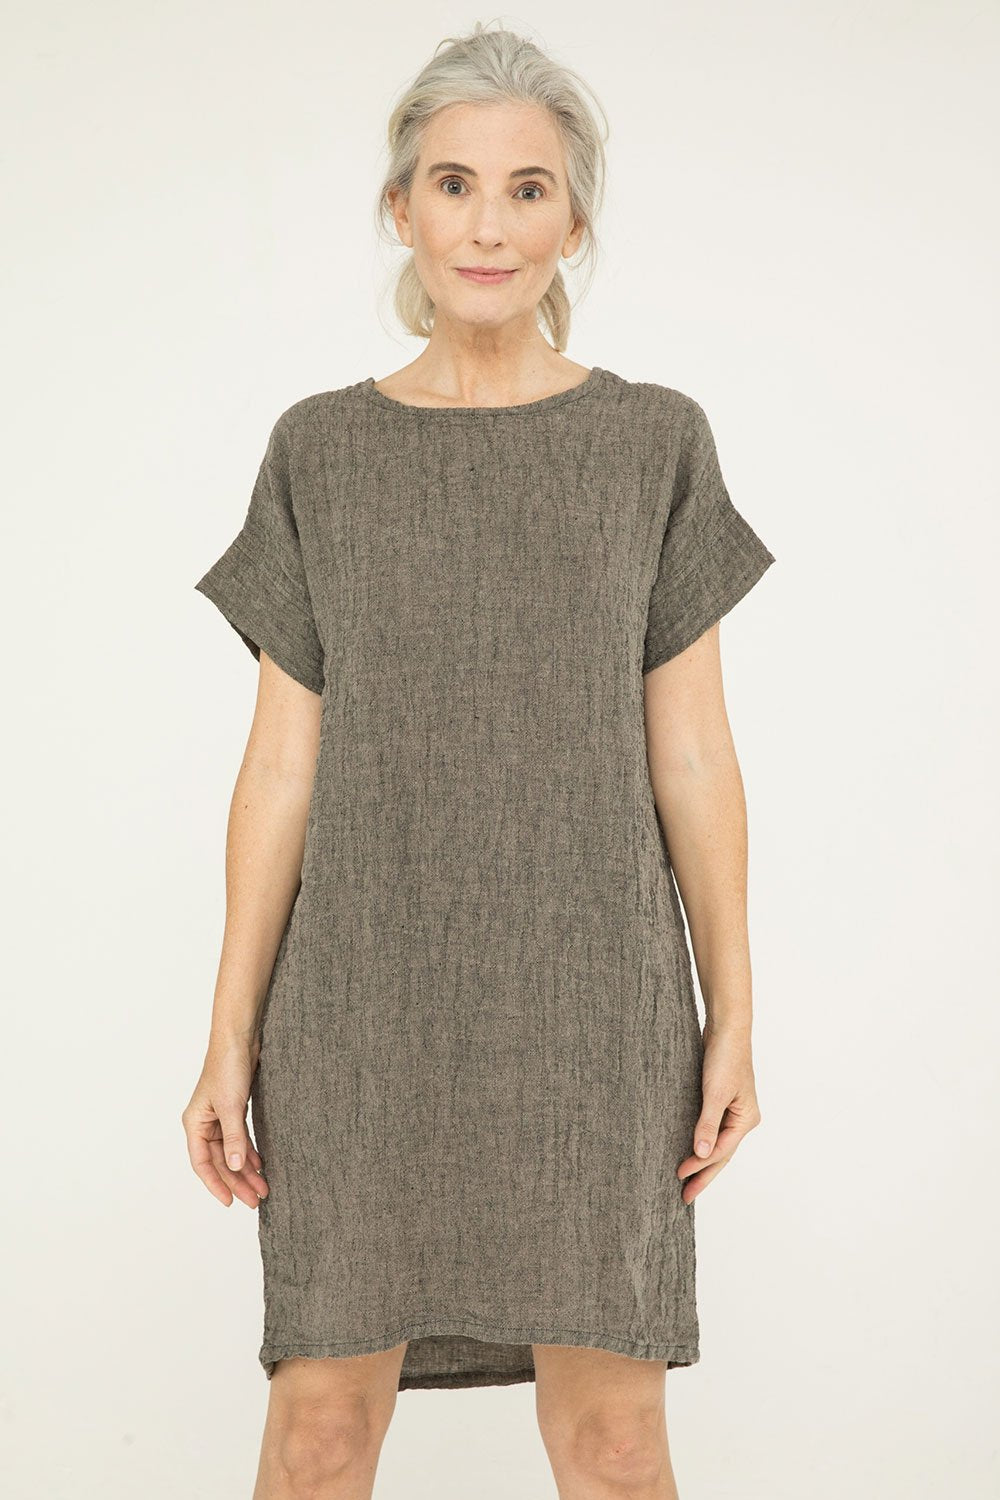 Georgia Dress in Linen Gauze Pepper- Kendall-OSM